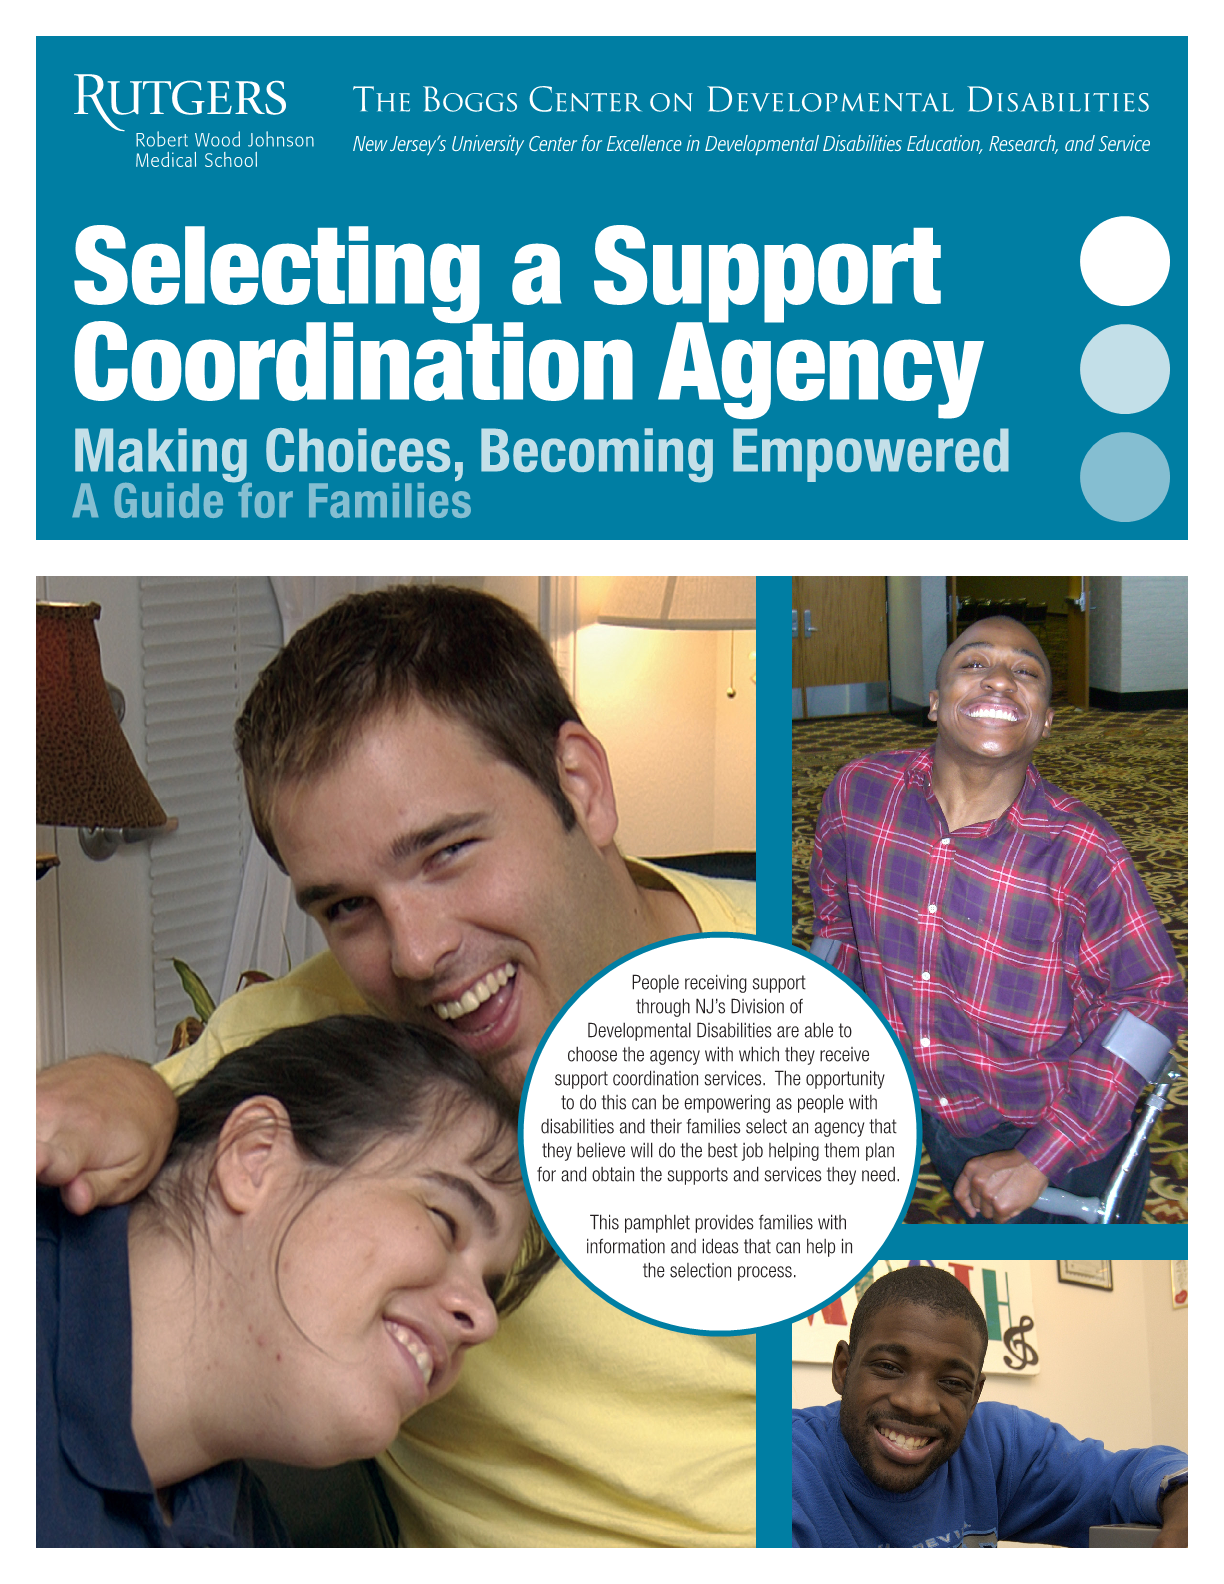 Selecting a Support Coordination Agency: Making Choices, Becoming Empowered